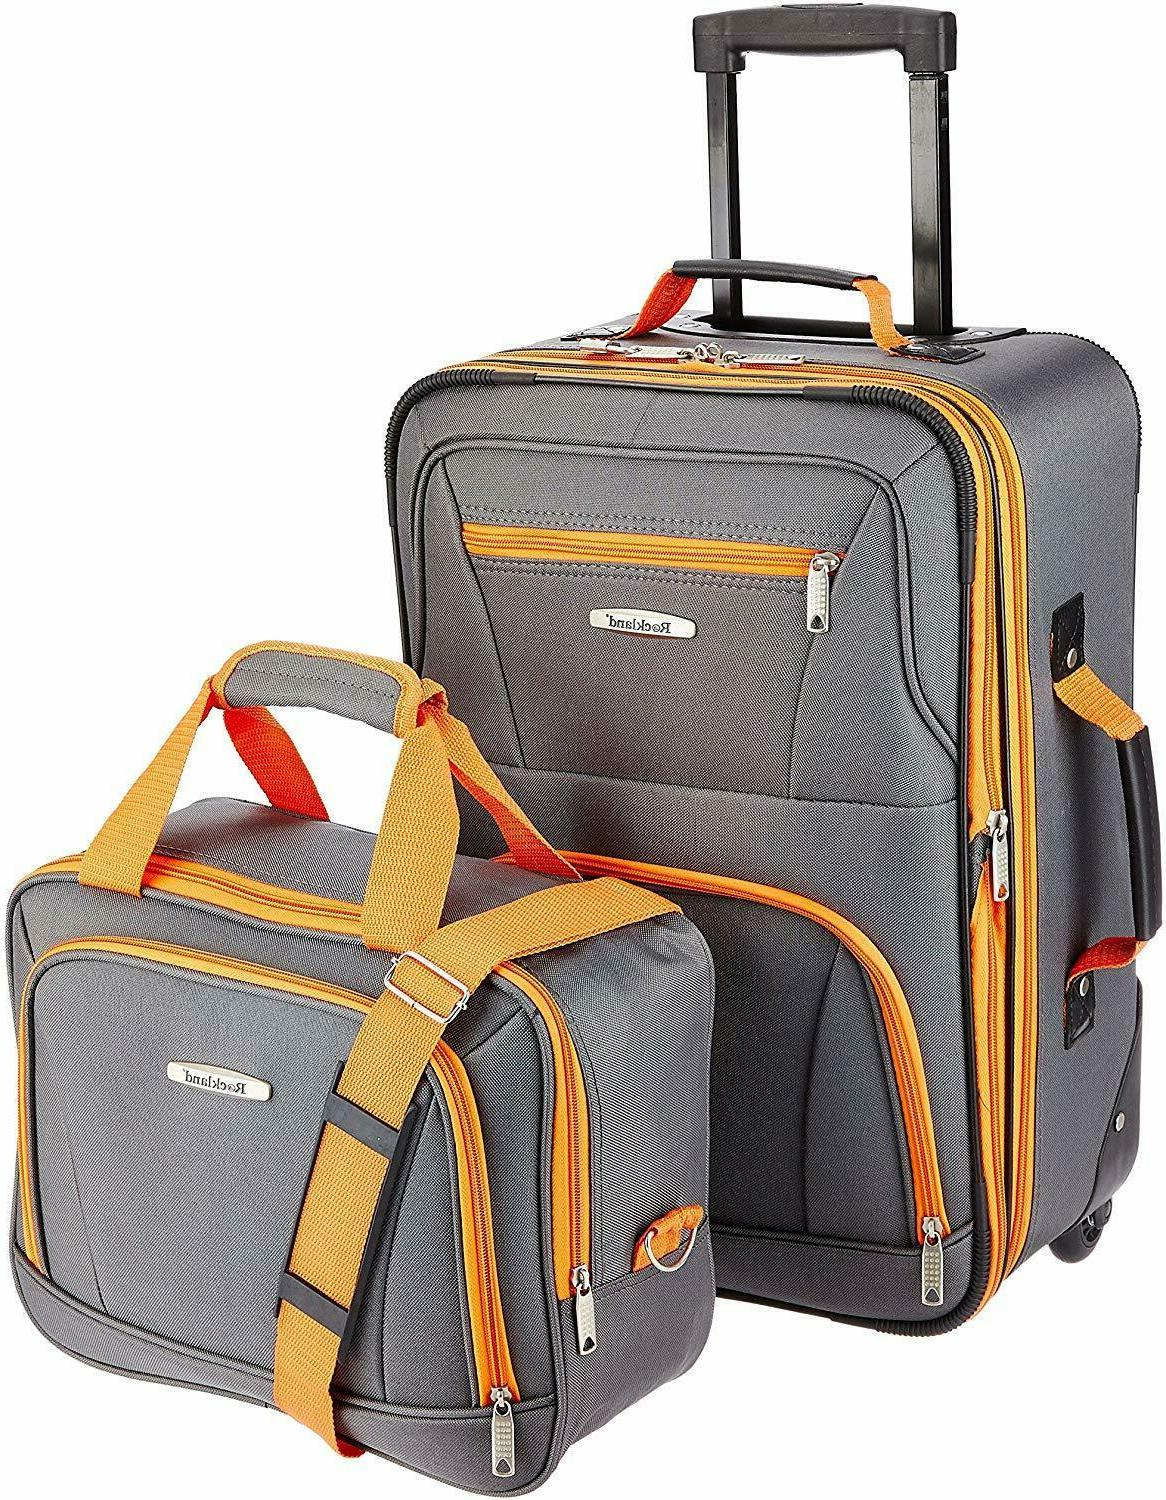 NEW Pcs Carry-on Rolling Tote Bag Set Expandable